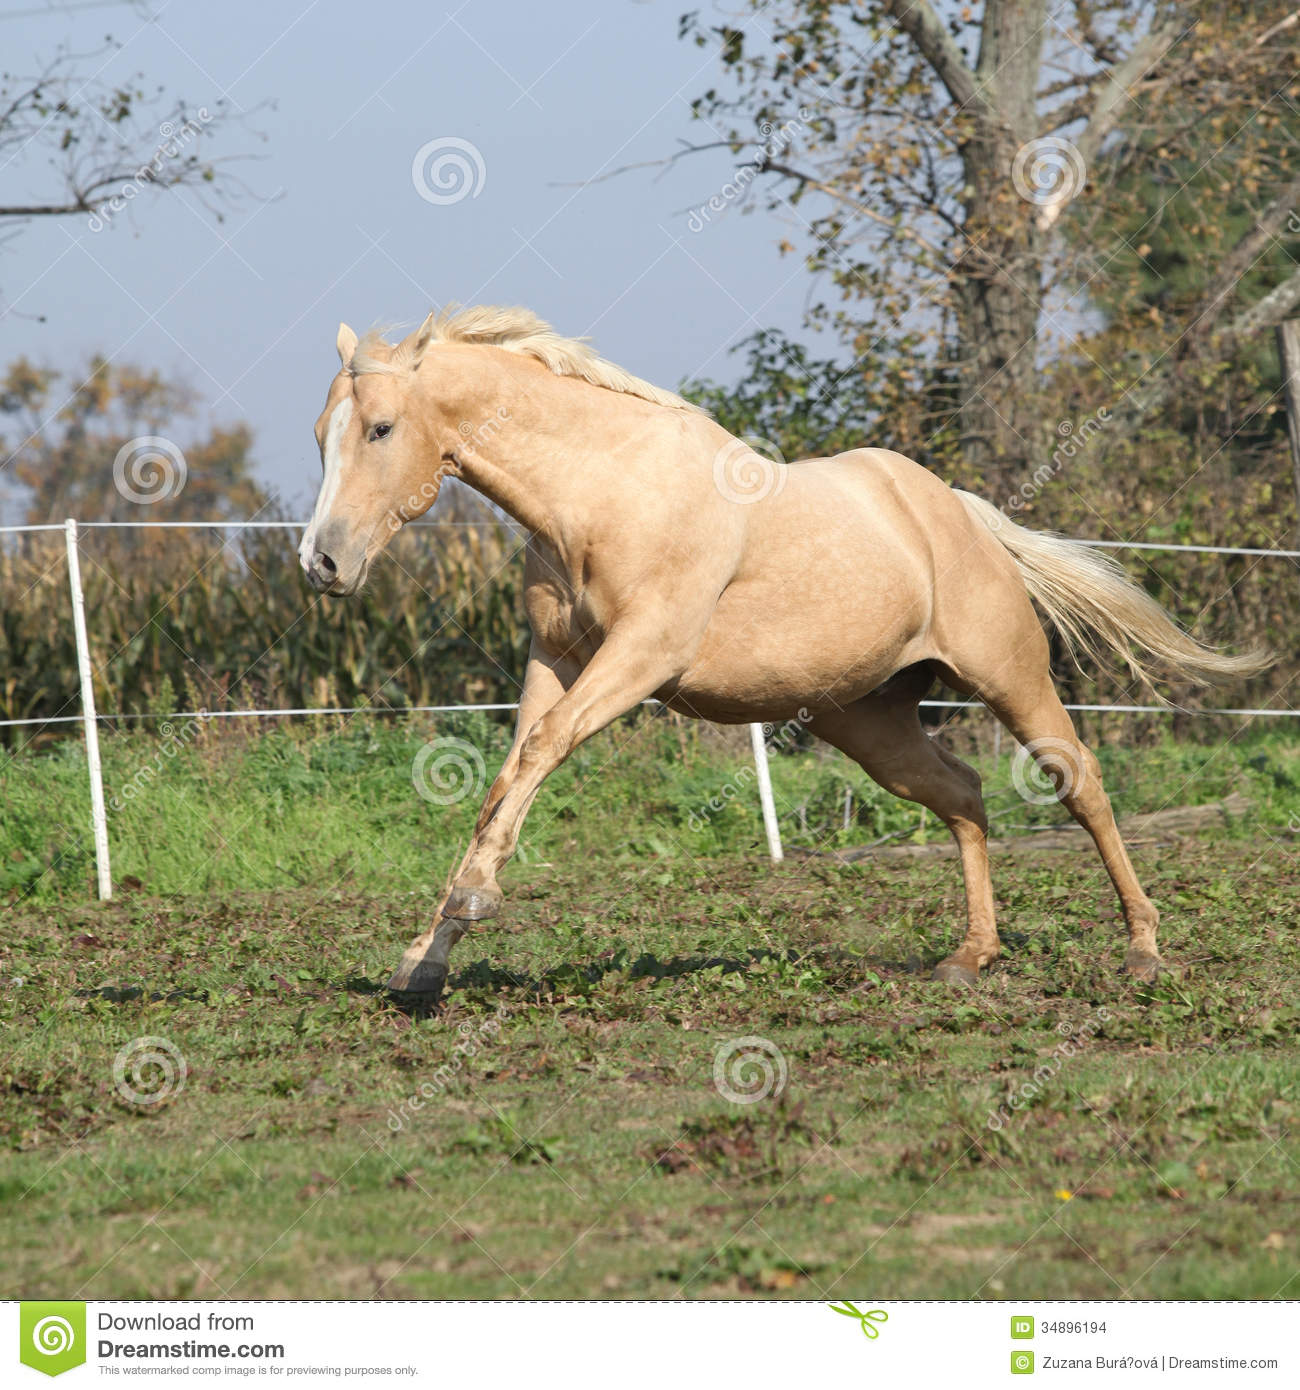 Angry Palomino Horse Attacking Stock Images - Image: 34896194 Palomino Horse Running